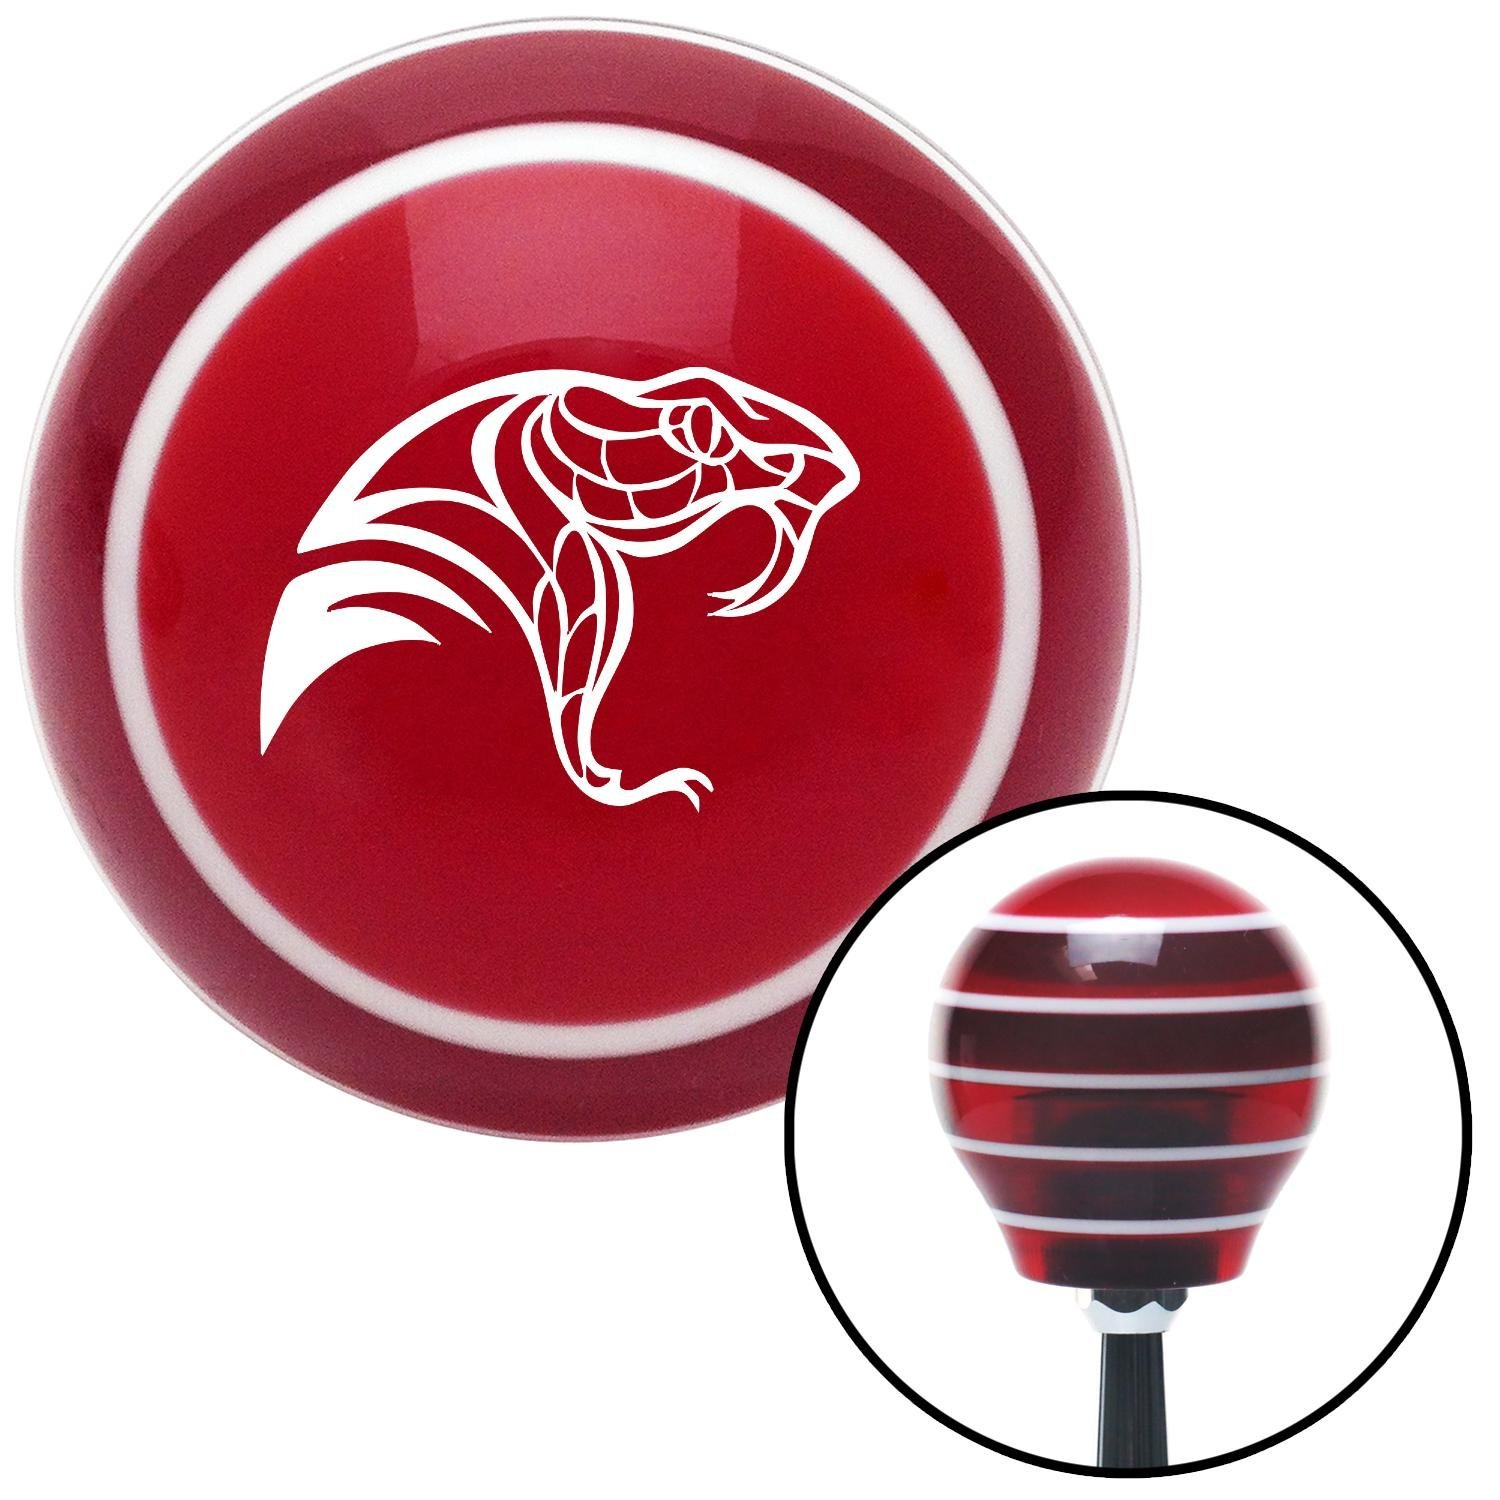 American Shifter 111785 Red Stripe Shift Knob with M16 x 1.5 Insert White Snake Profile